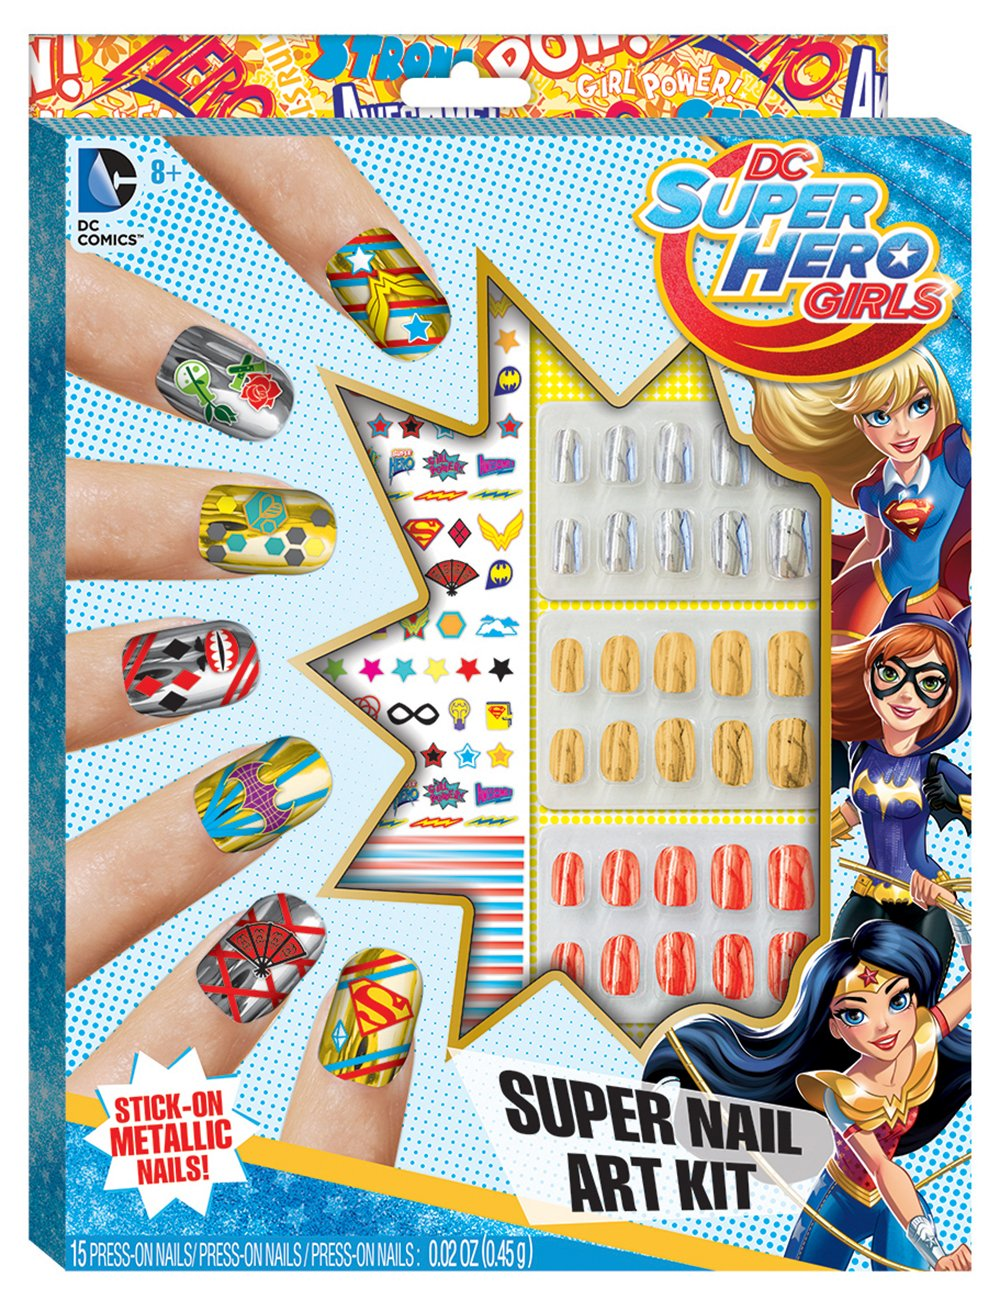 Amazon.com: DC Superhero Girls Super Nail Art Kit: Toys & Games